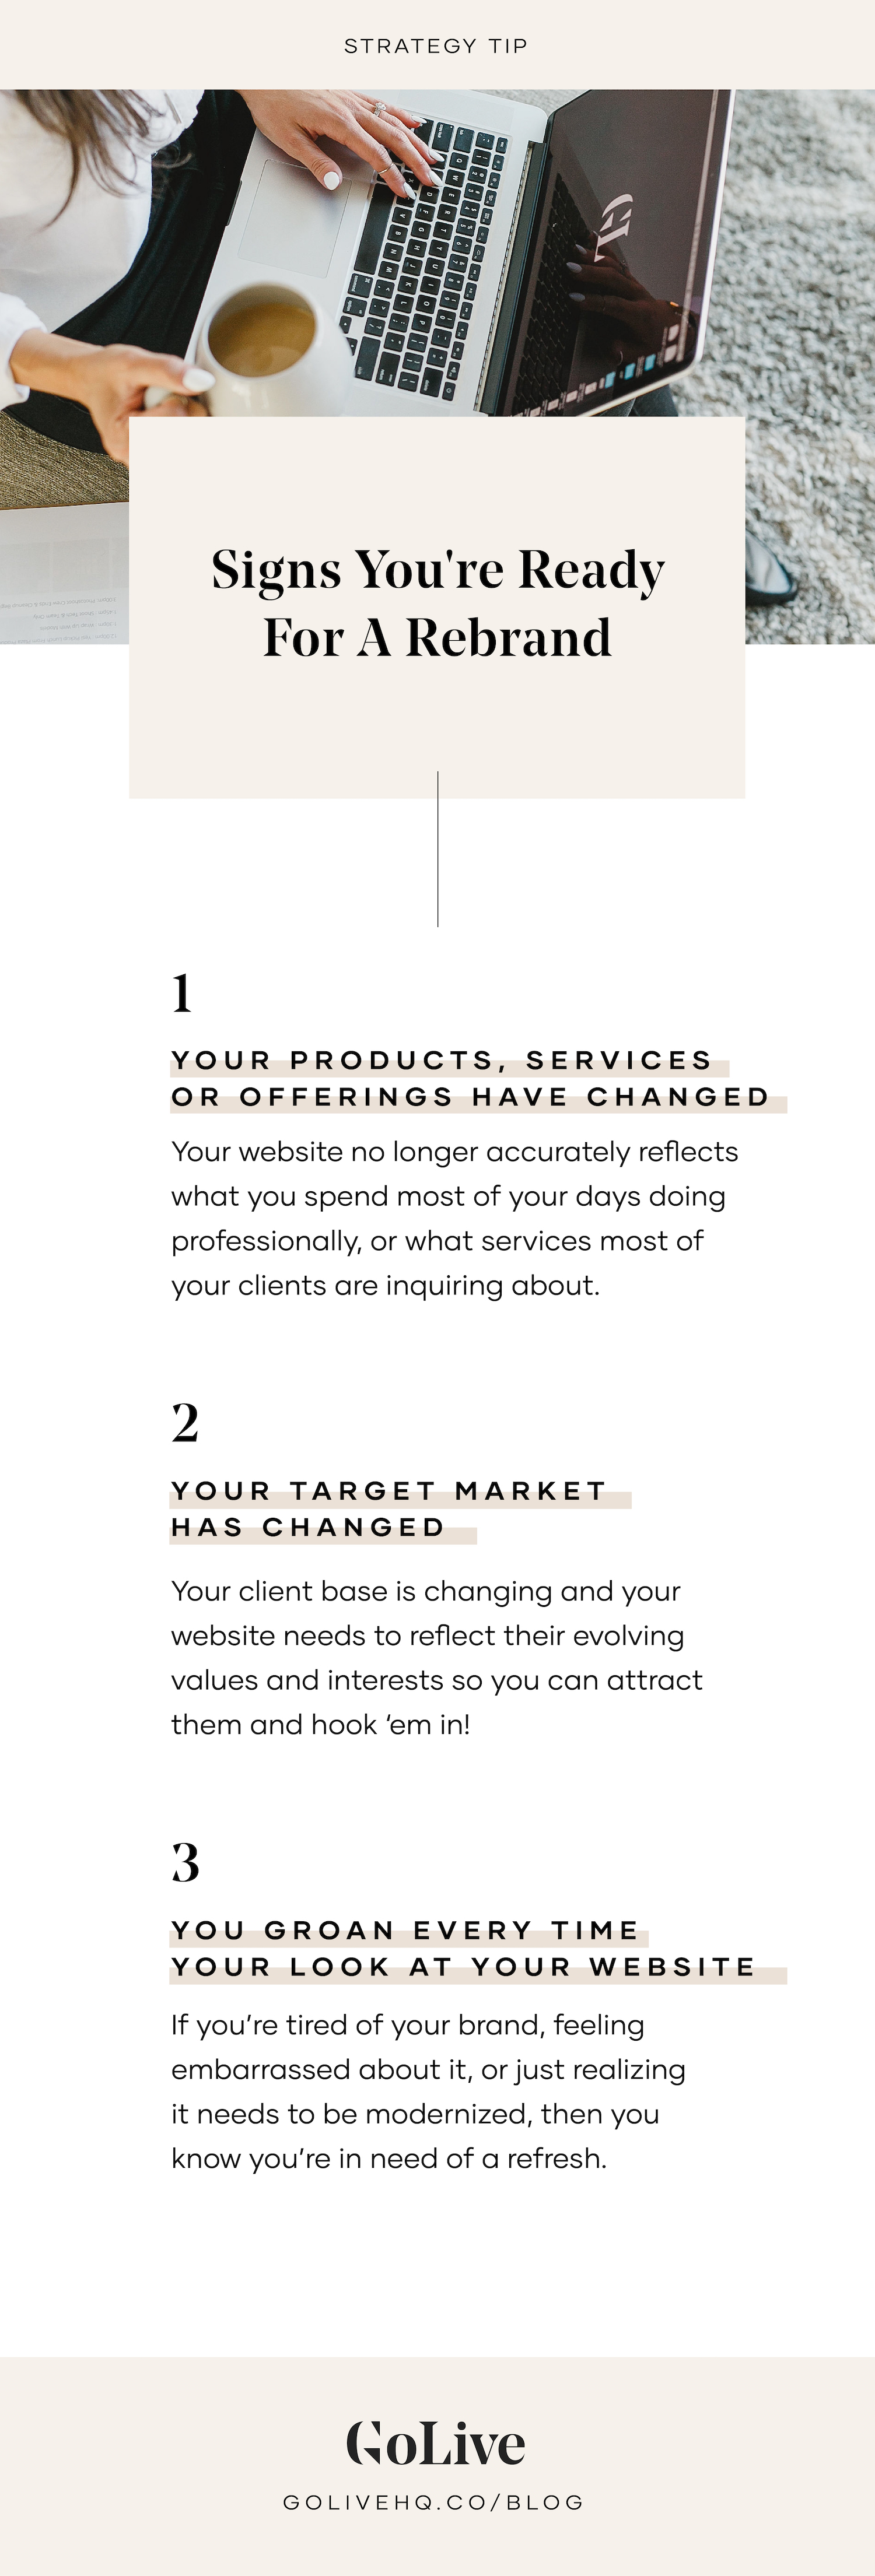 3 signs you're ready for a rebrand   By GoLive